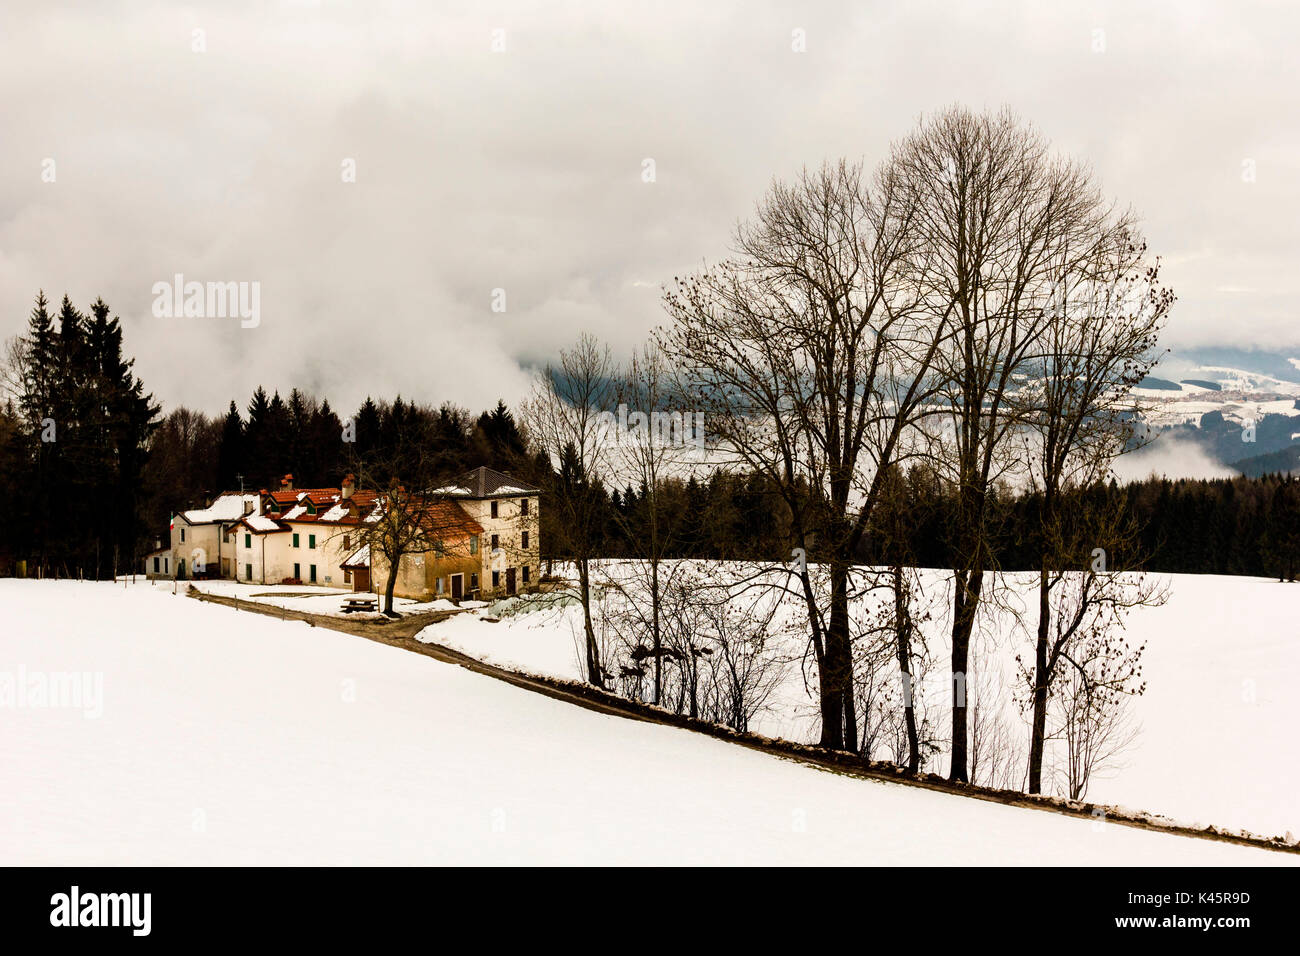 Tresche Conca, Altopiano of Asiago, Province of Vicenza, Veneto, Italy. Small hamlet in winter. - Stock Image